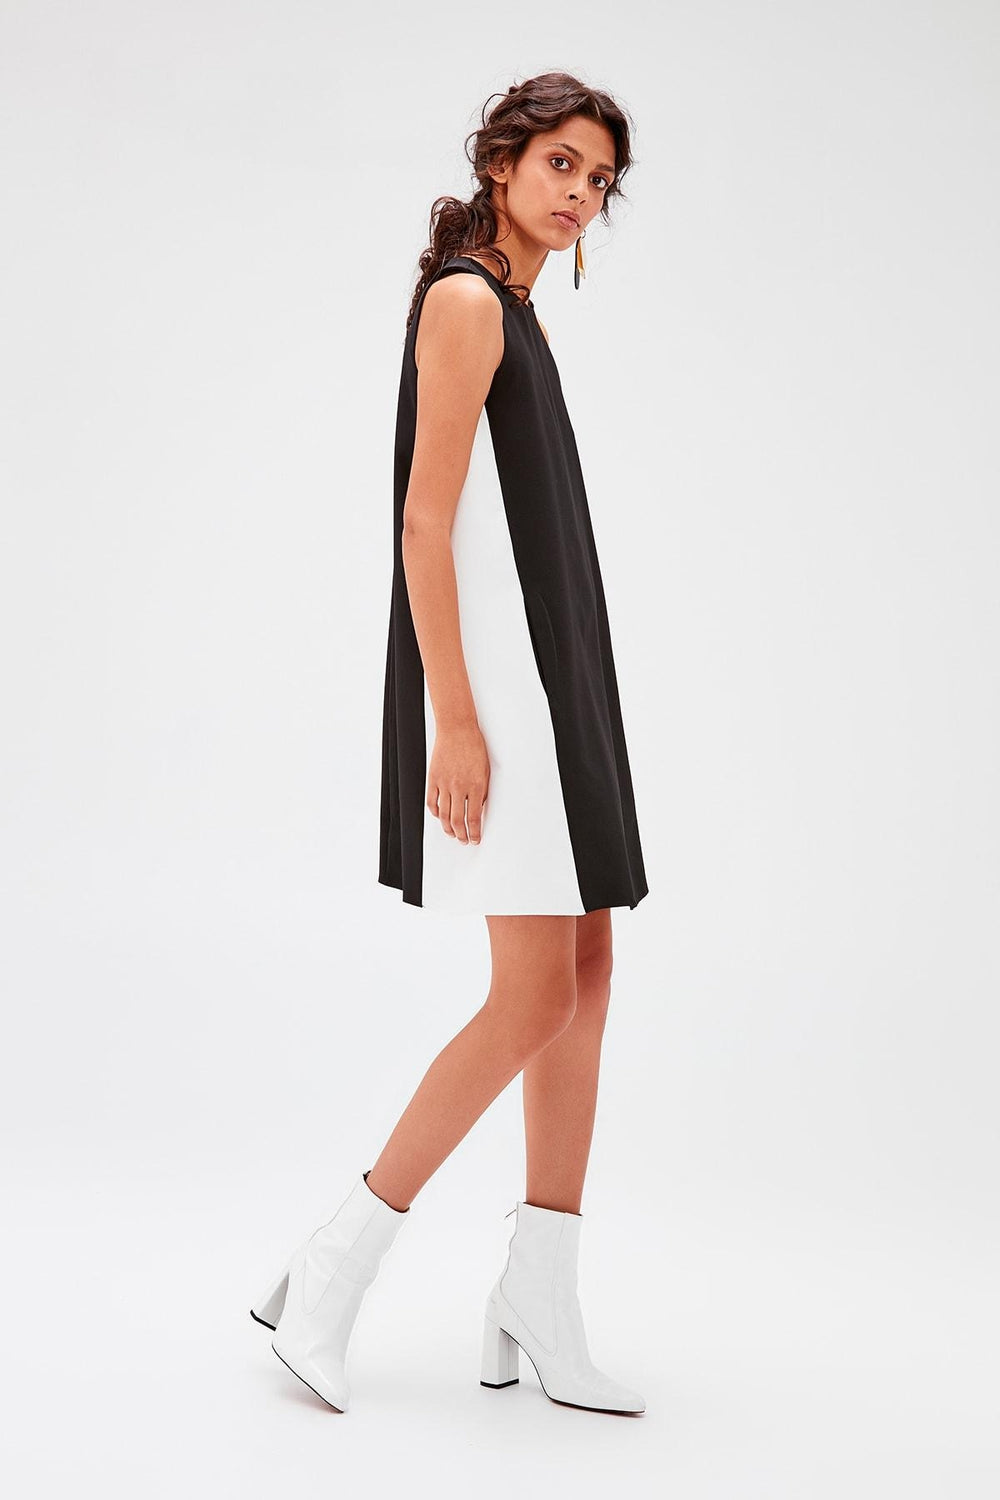 Black With Color Block Dress - Top Maxy